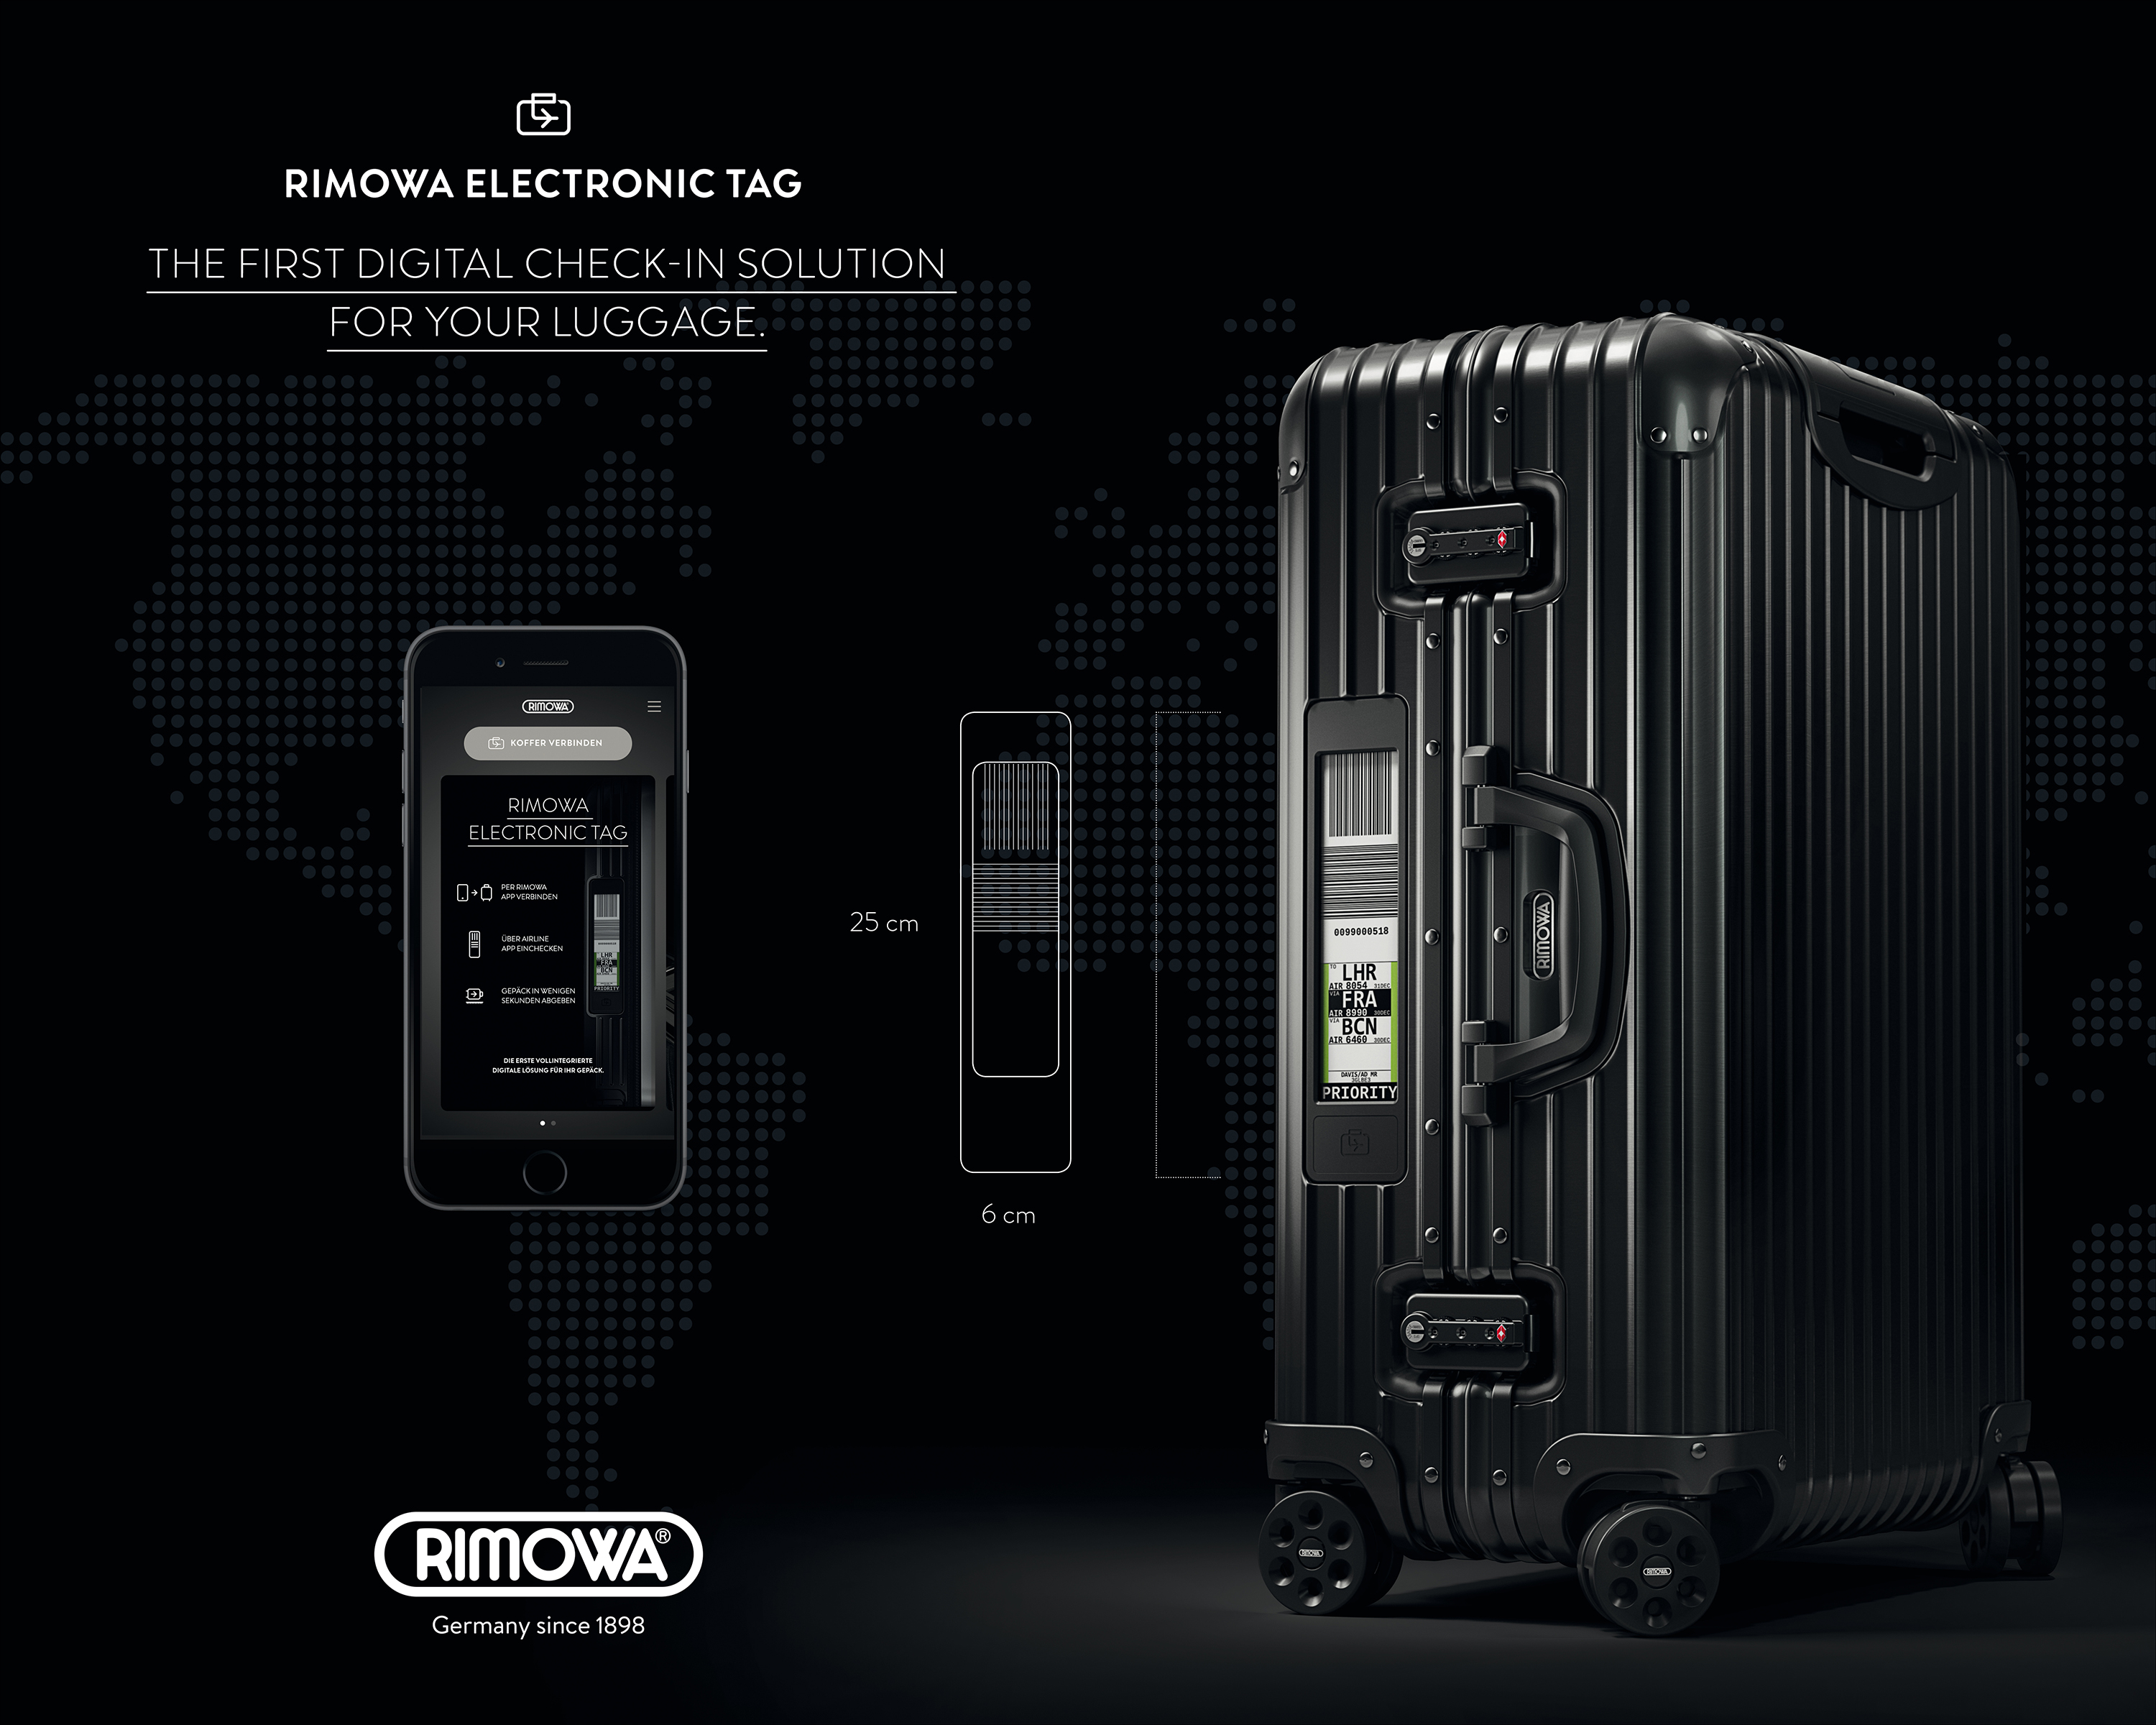 Thumbnail for RIMOWA ELECTRONIC TAG